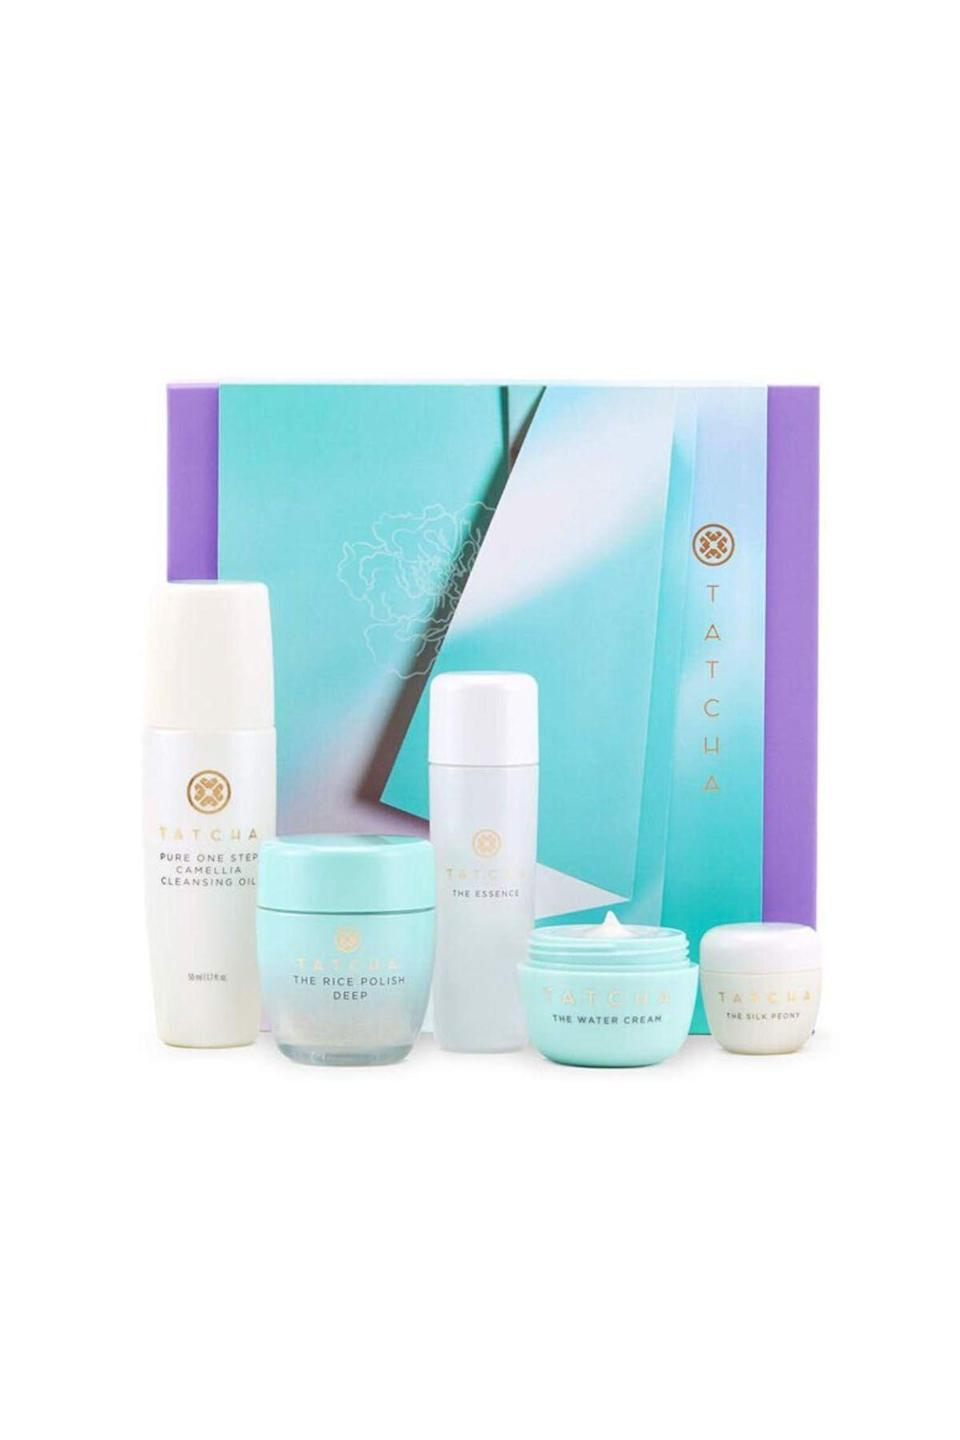 "<p><strong>Tatcha </strong></p><p>amazon.com</p><p><strong>$68.00</strong></p><p><a href=""https://www.amazon.com/dp/B08D3PK6KZ?tag=syn-yahoo-20&ascsubtag=%5Bartid%7C10058.g.4124%5Bsrc%7Cyahoo-us"" rel=""nofollow noopener"" target=""_blank"" data-ylk=""slk:SHOP IT"" class=""link rapid-noclick-resp"">SHOP IT</a></p><p>Have you been neglecting the eye cream? (Same.) This kit should undo some of the damage that you *would* have been preventing had you been diligent about applying said stuff.</p>"